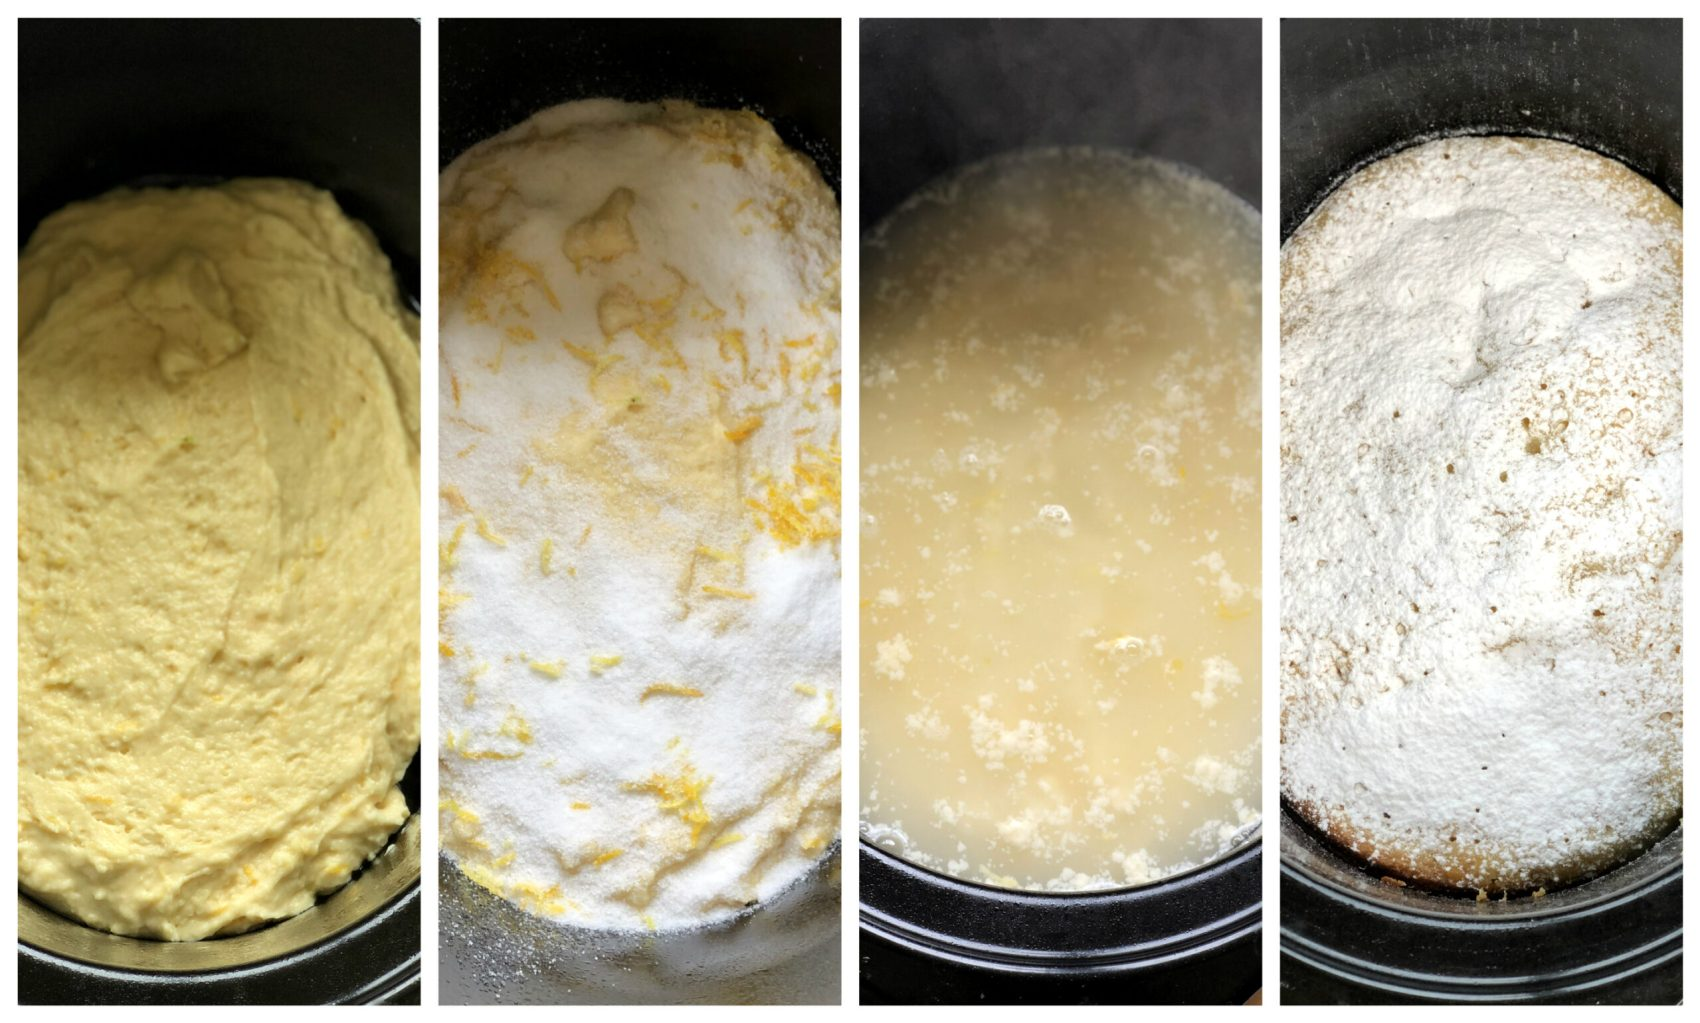 4 steps for how to make slow cooker self saucing pudding